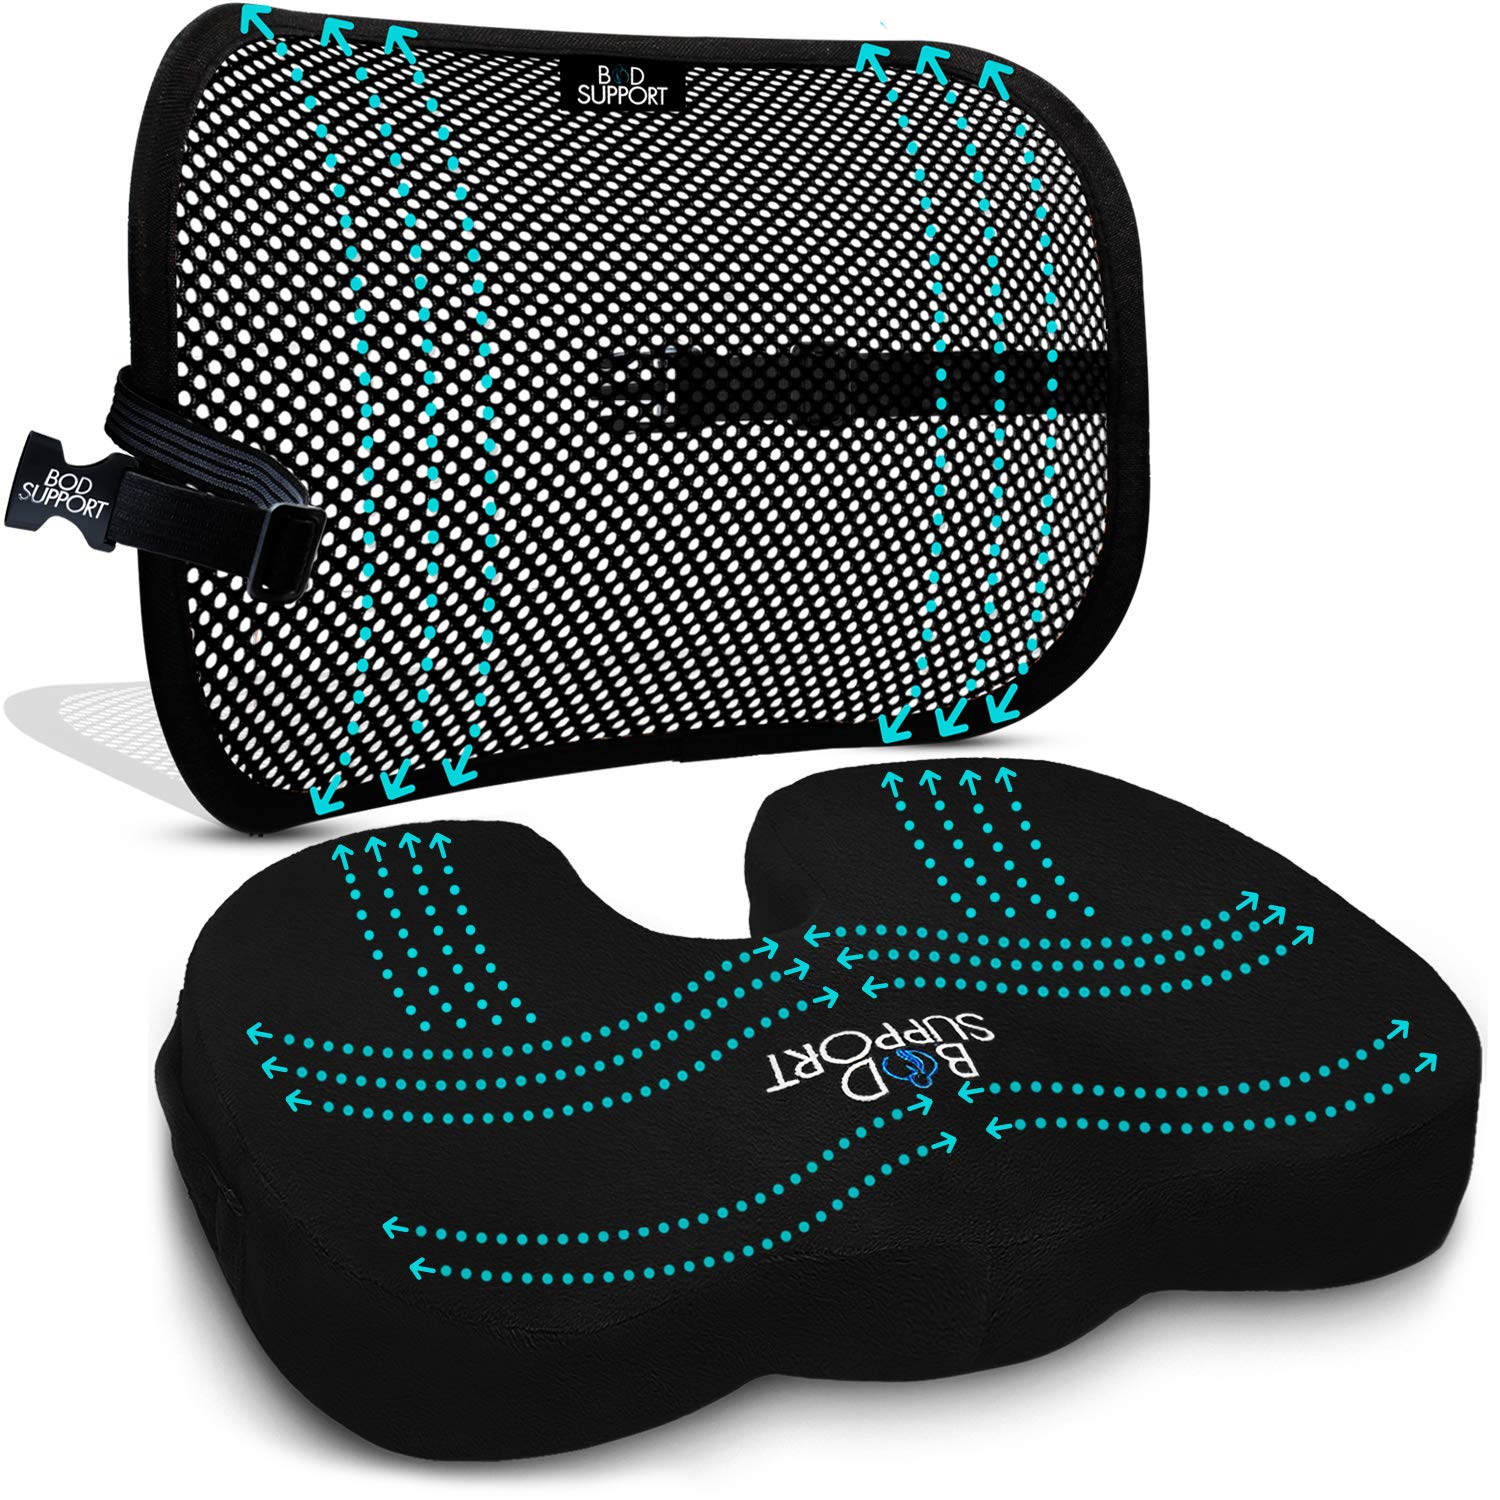 Back Support Seat Cushion Set - Memory Foam With Orthopedic Design To Relieve Coccyx, Sciatica And Tailbone Pain From Prolonged Sitting In The Car, Office Or Kitchen Chairs - Mesh Breathable Material by Bod Support